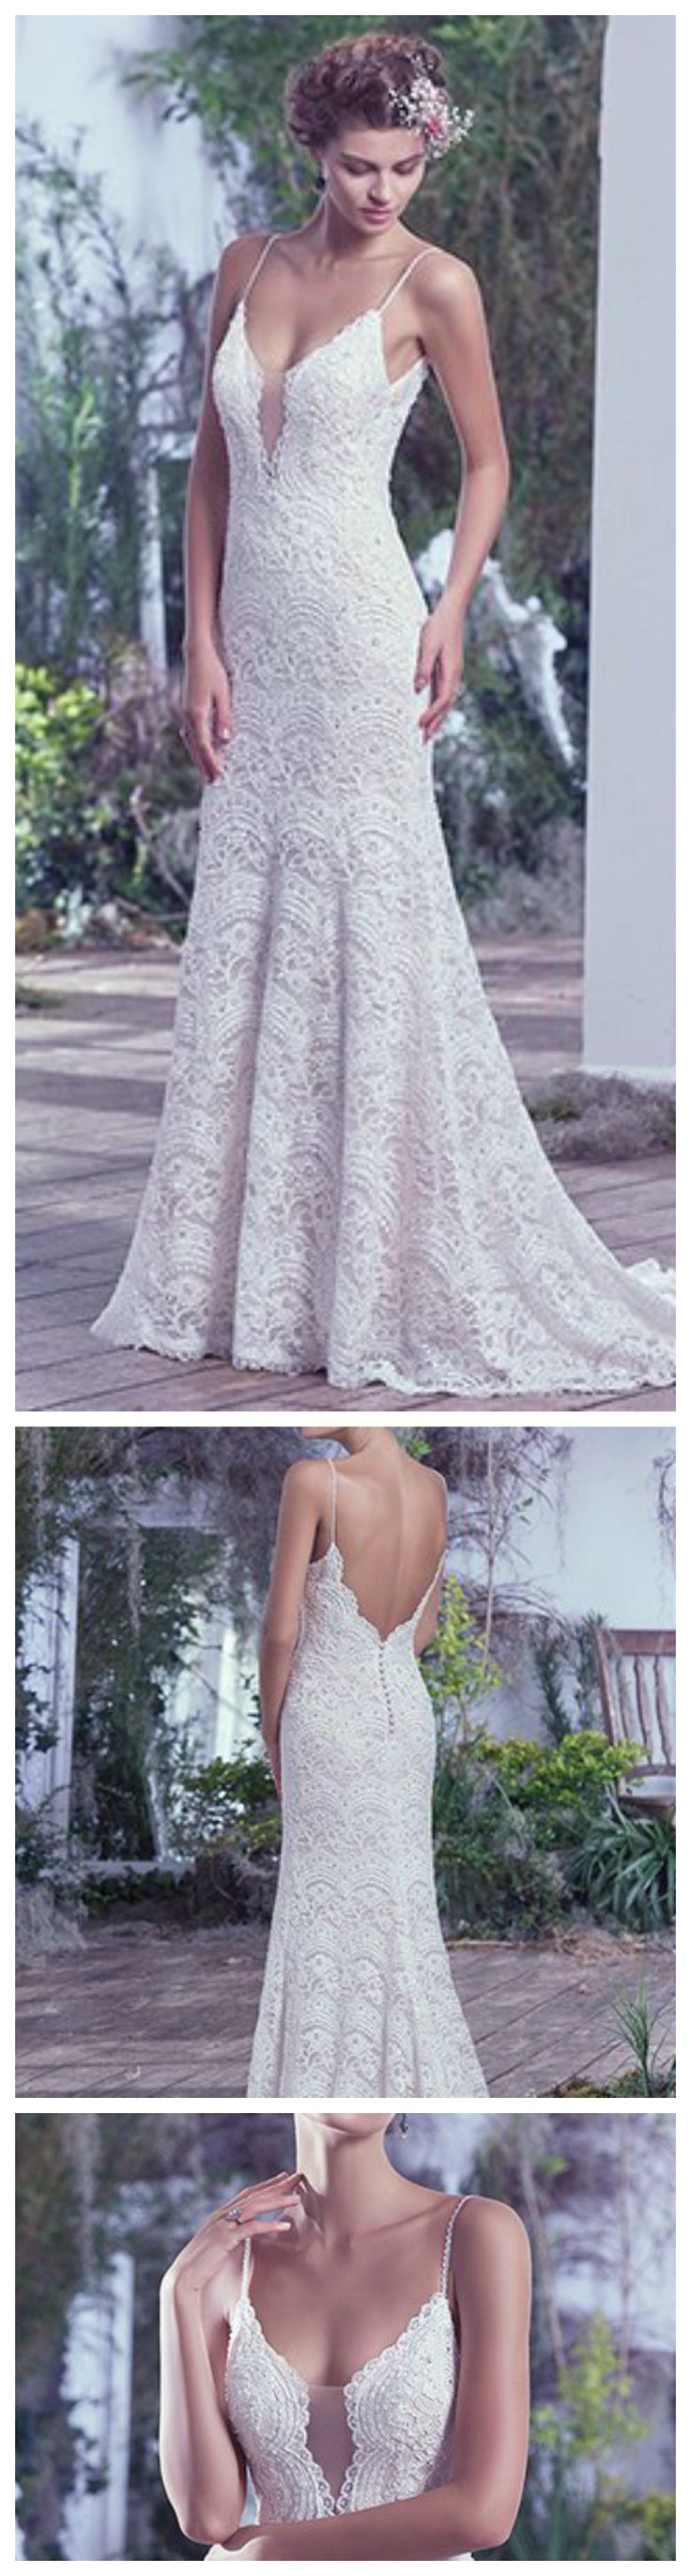 21 best Watters and WTOO images on Pinterest | Short wedding gowns ...